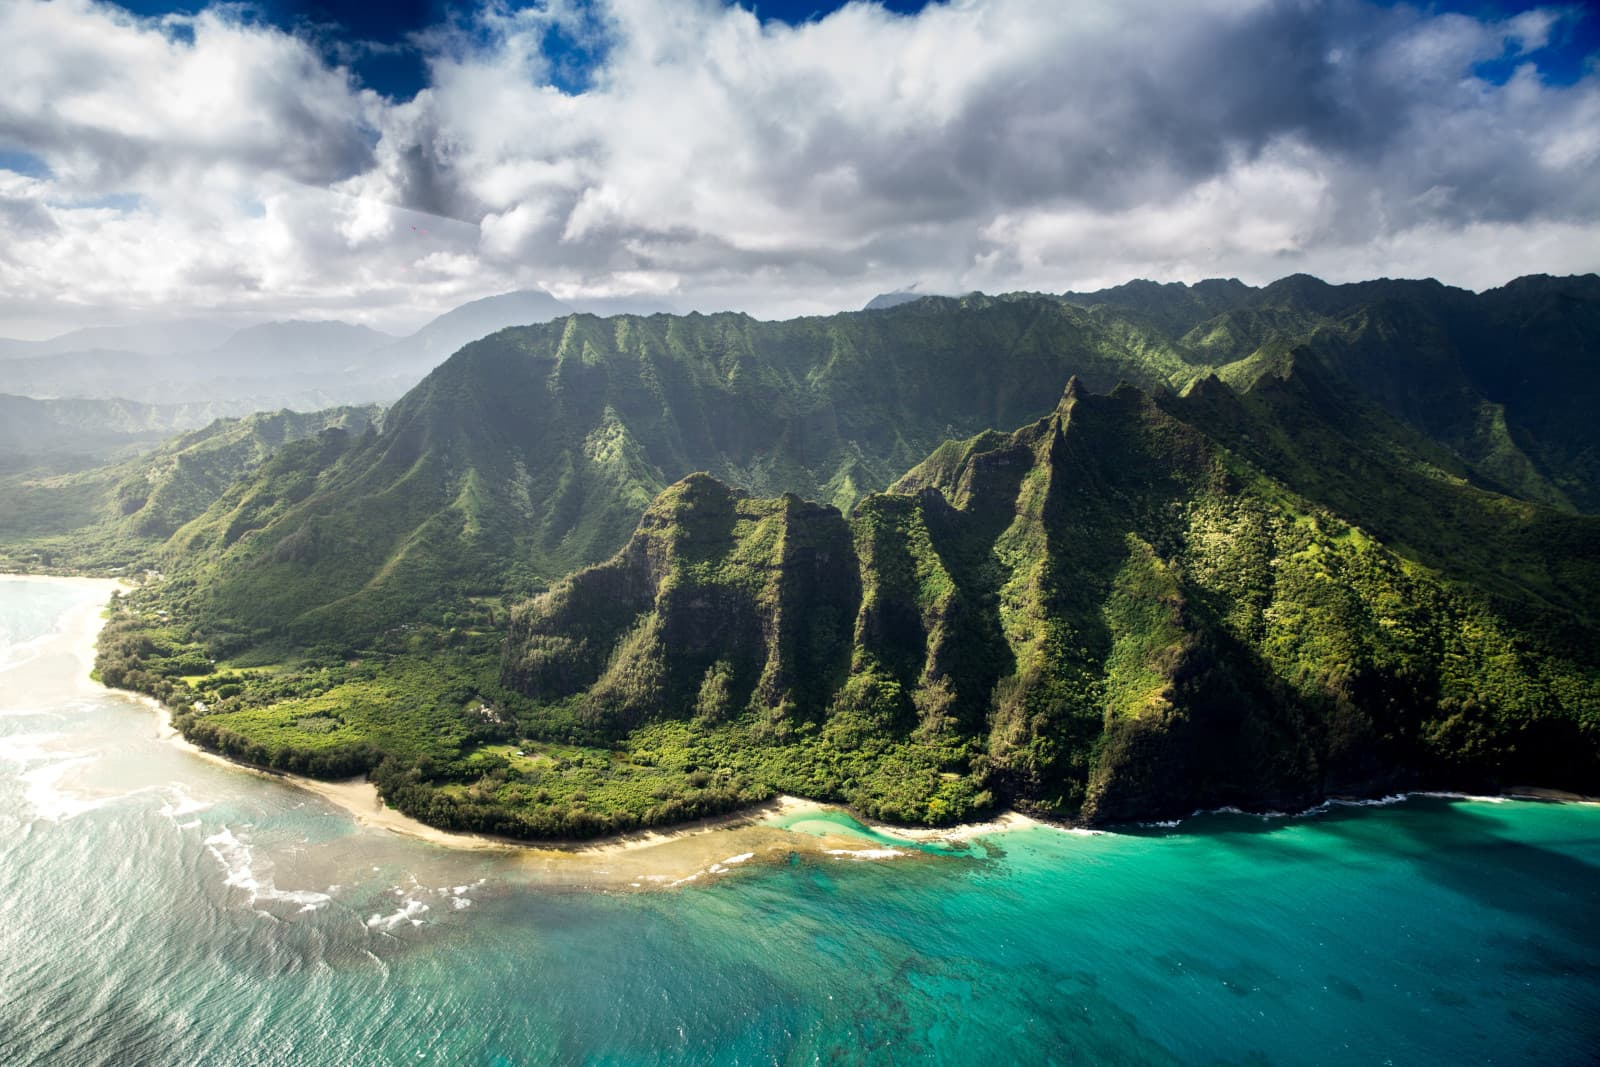 Spectacular view of Hawaiian mountains and coastline